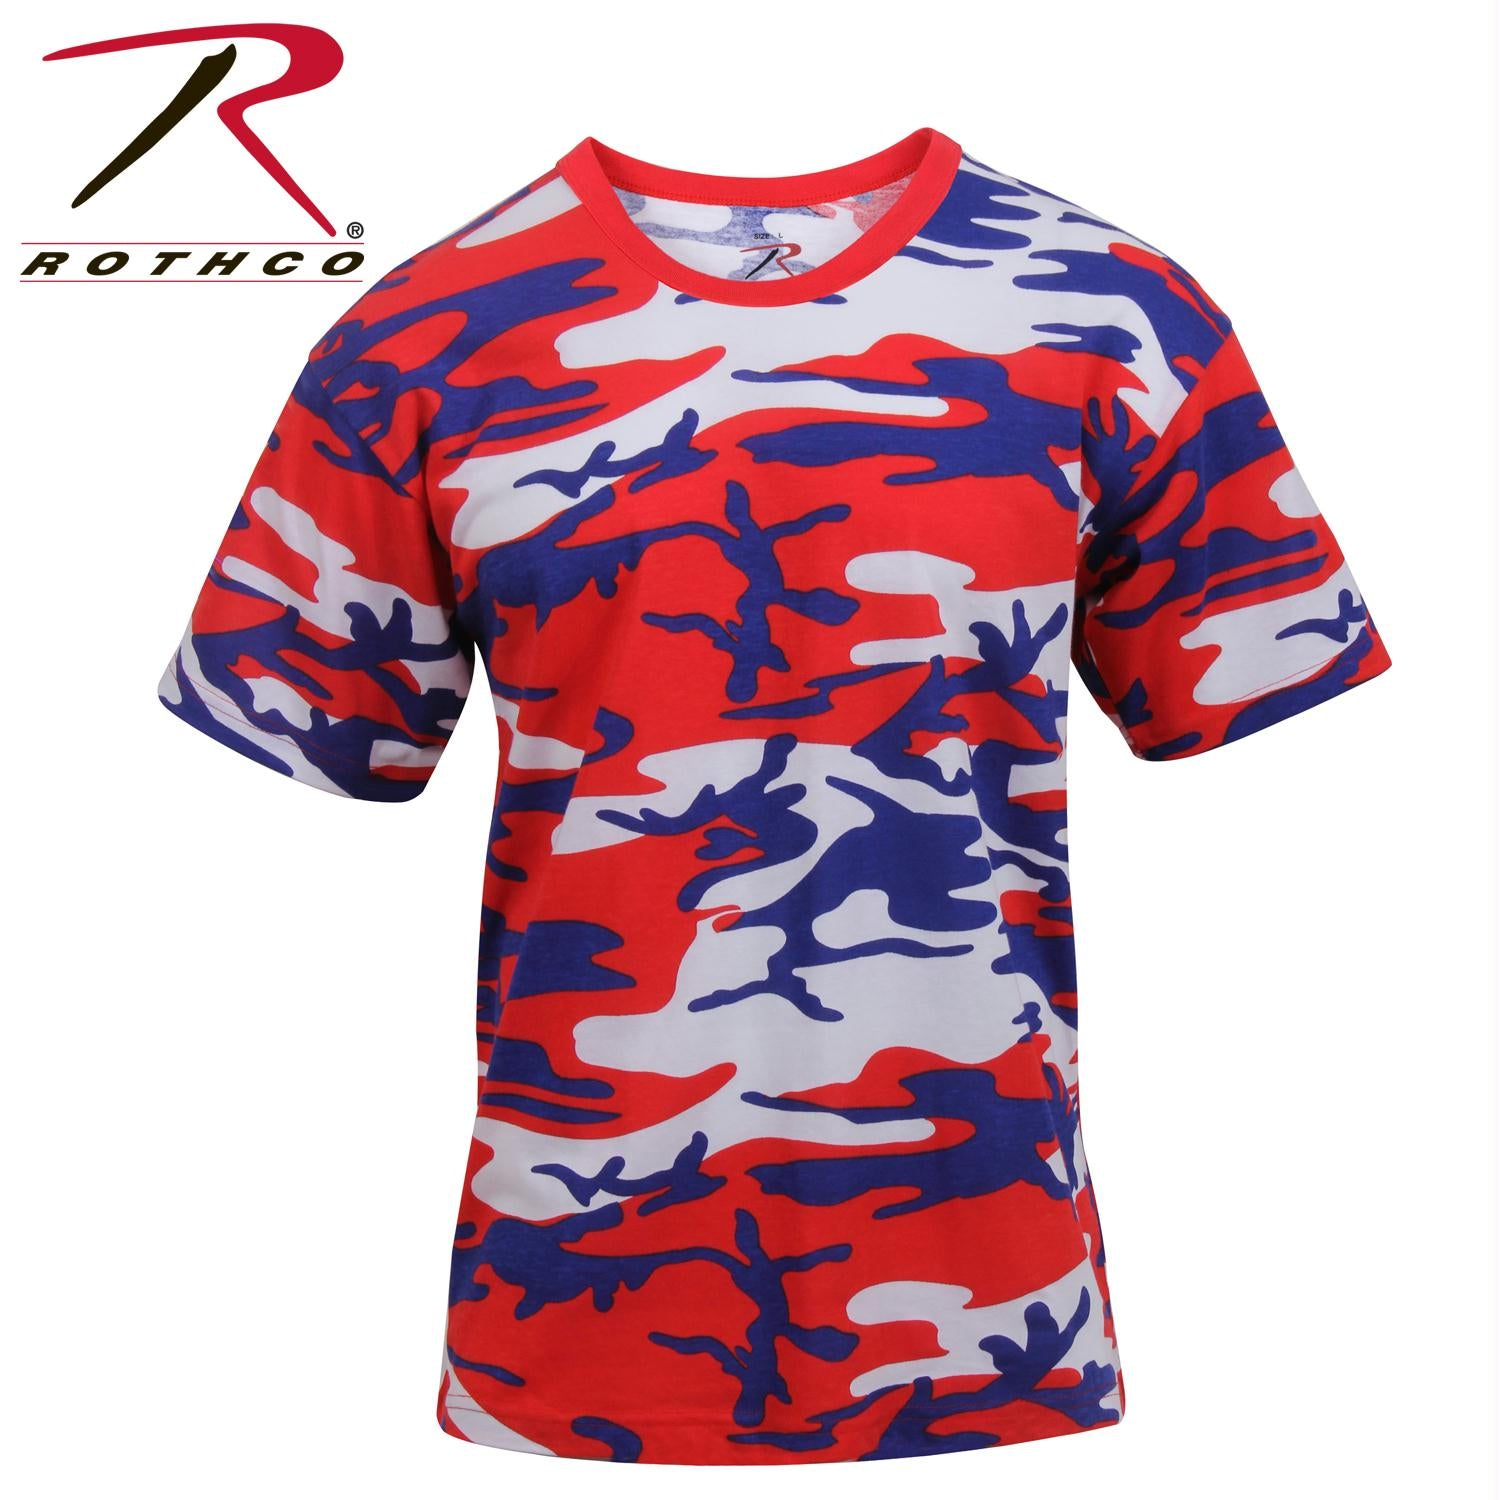 Rothco Colored Camo T-Shirts - Red / White / Blue / S